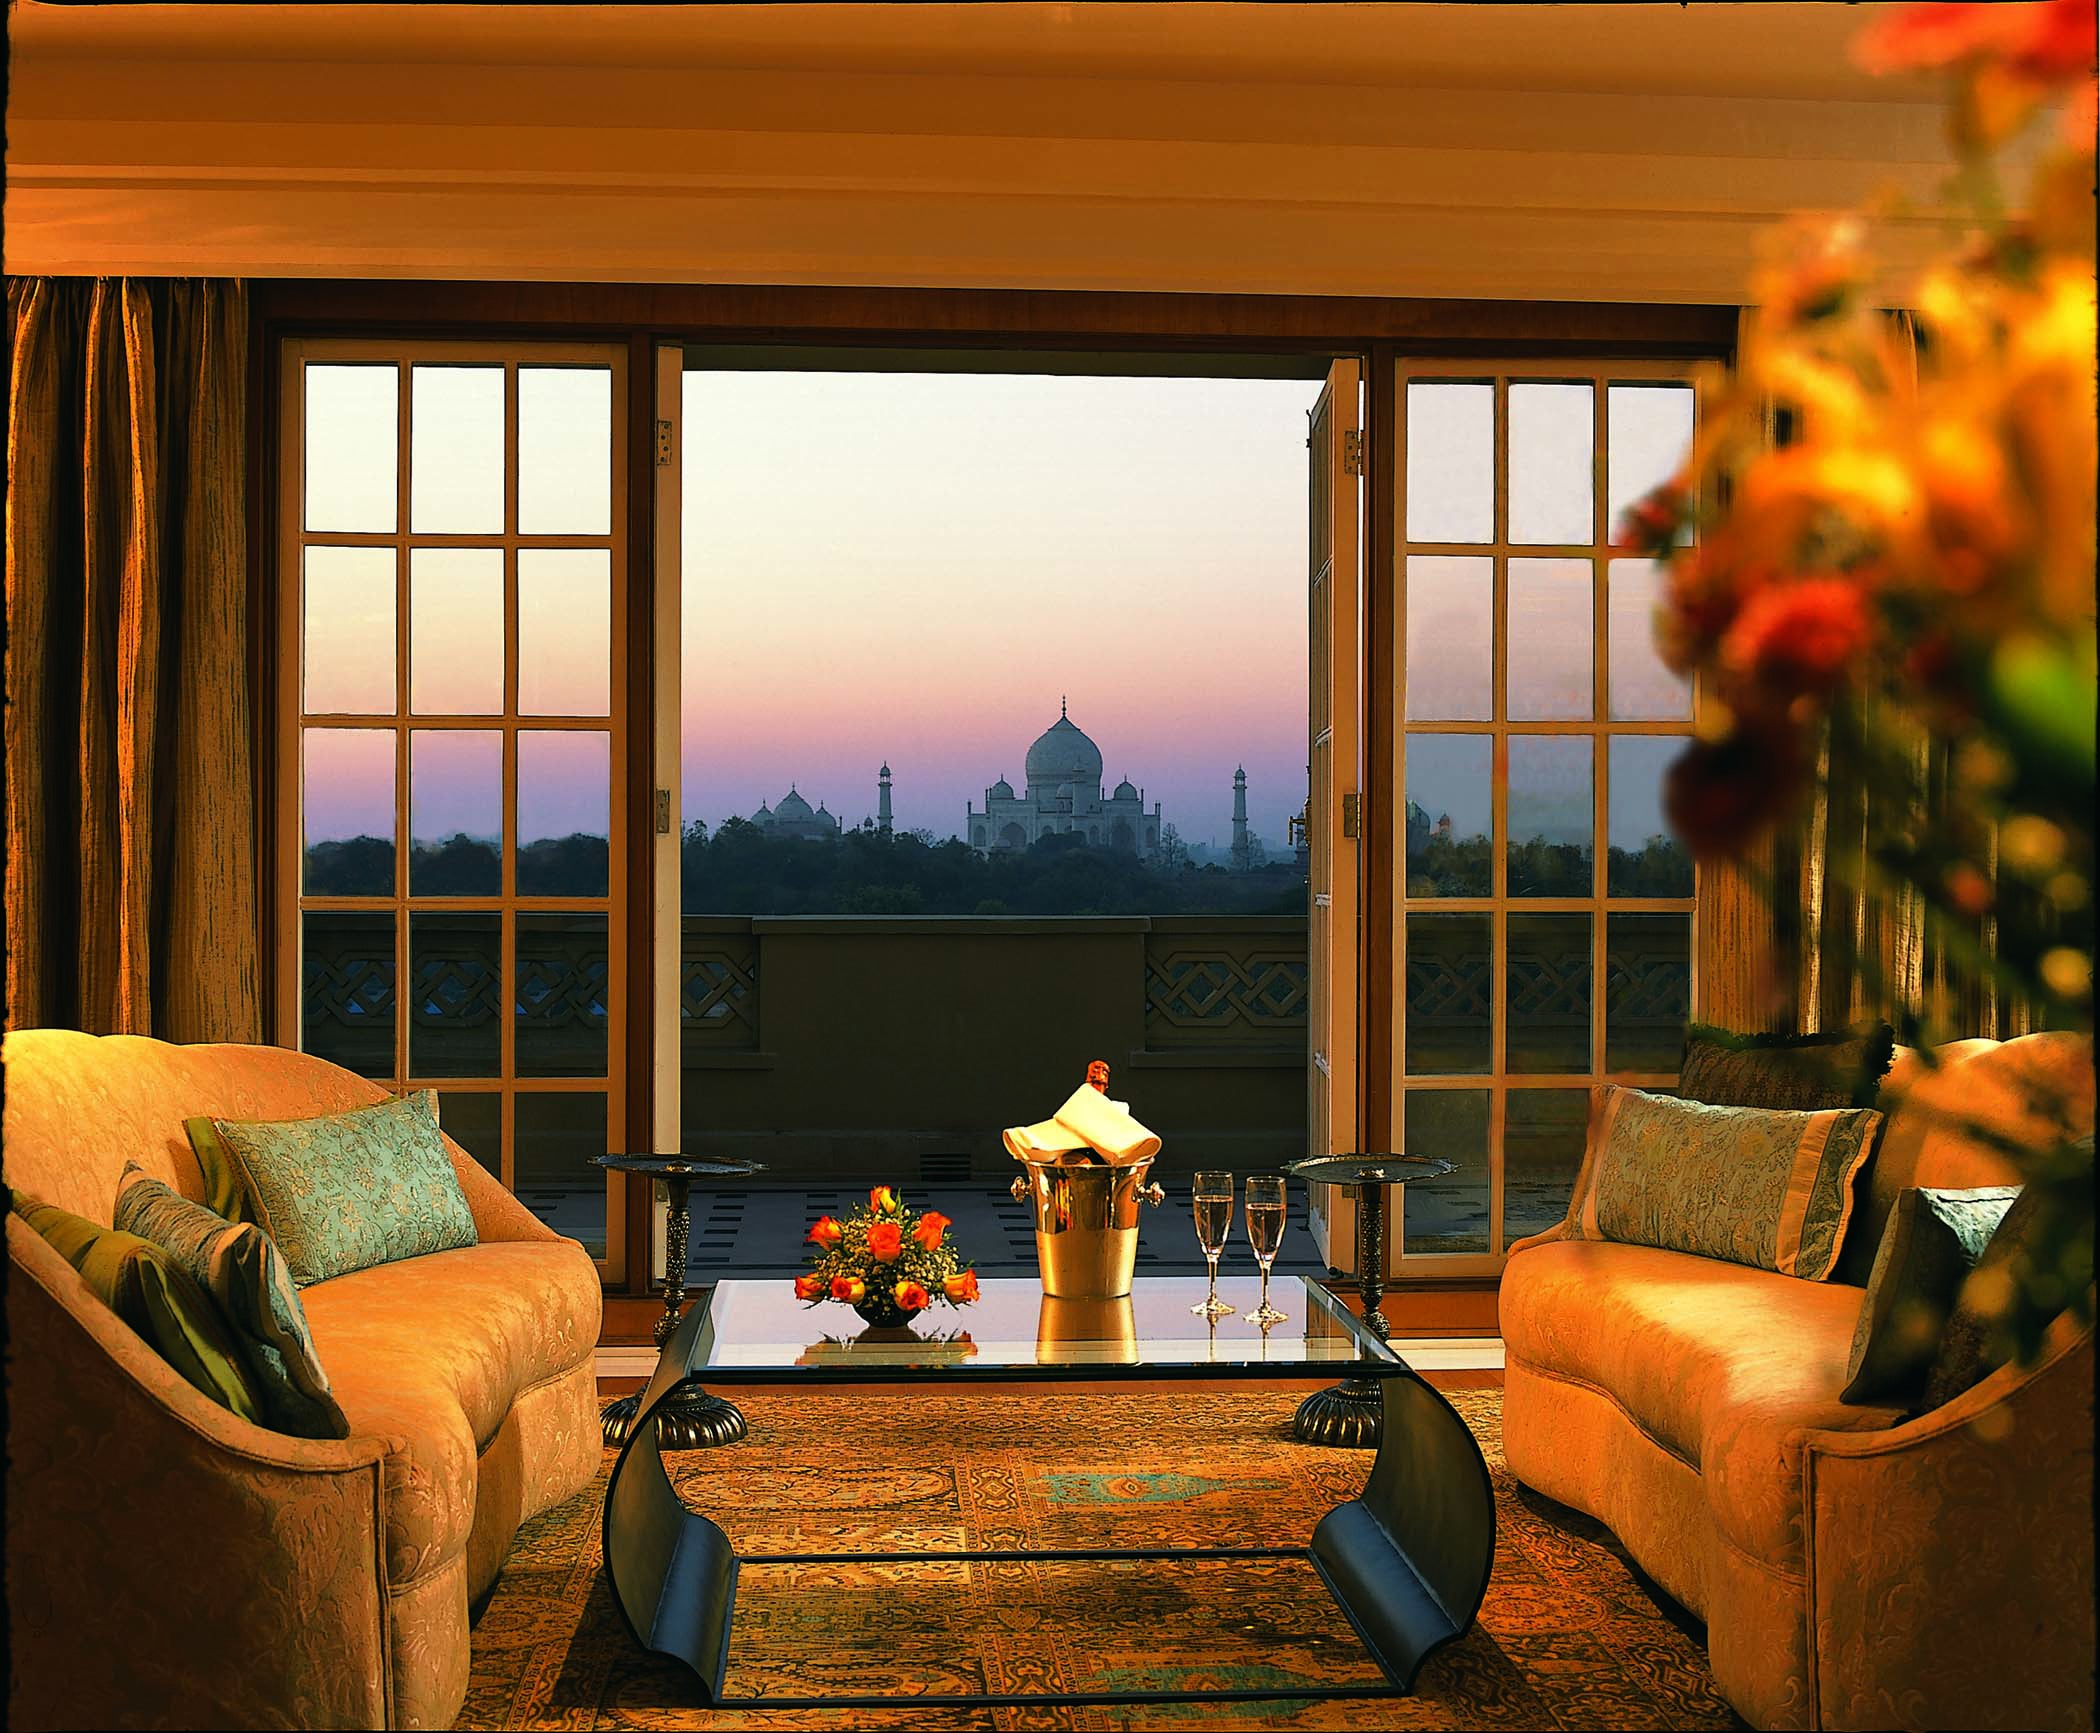 Credit: The Oberoi Amarvilas